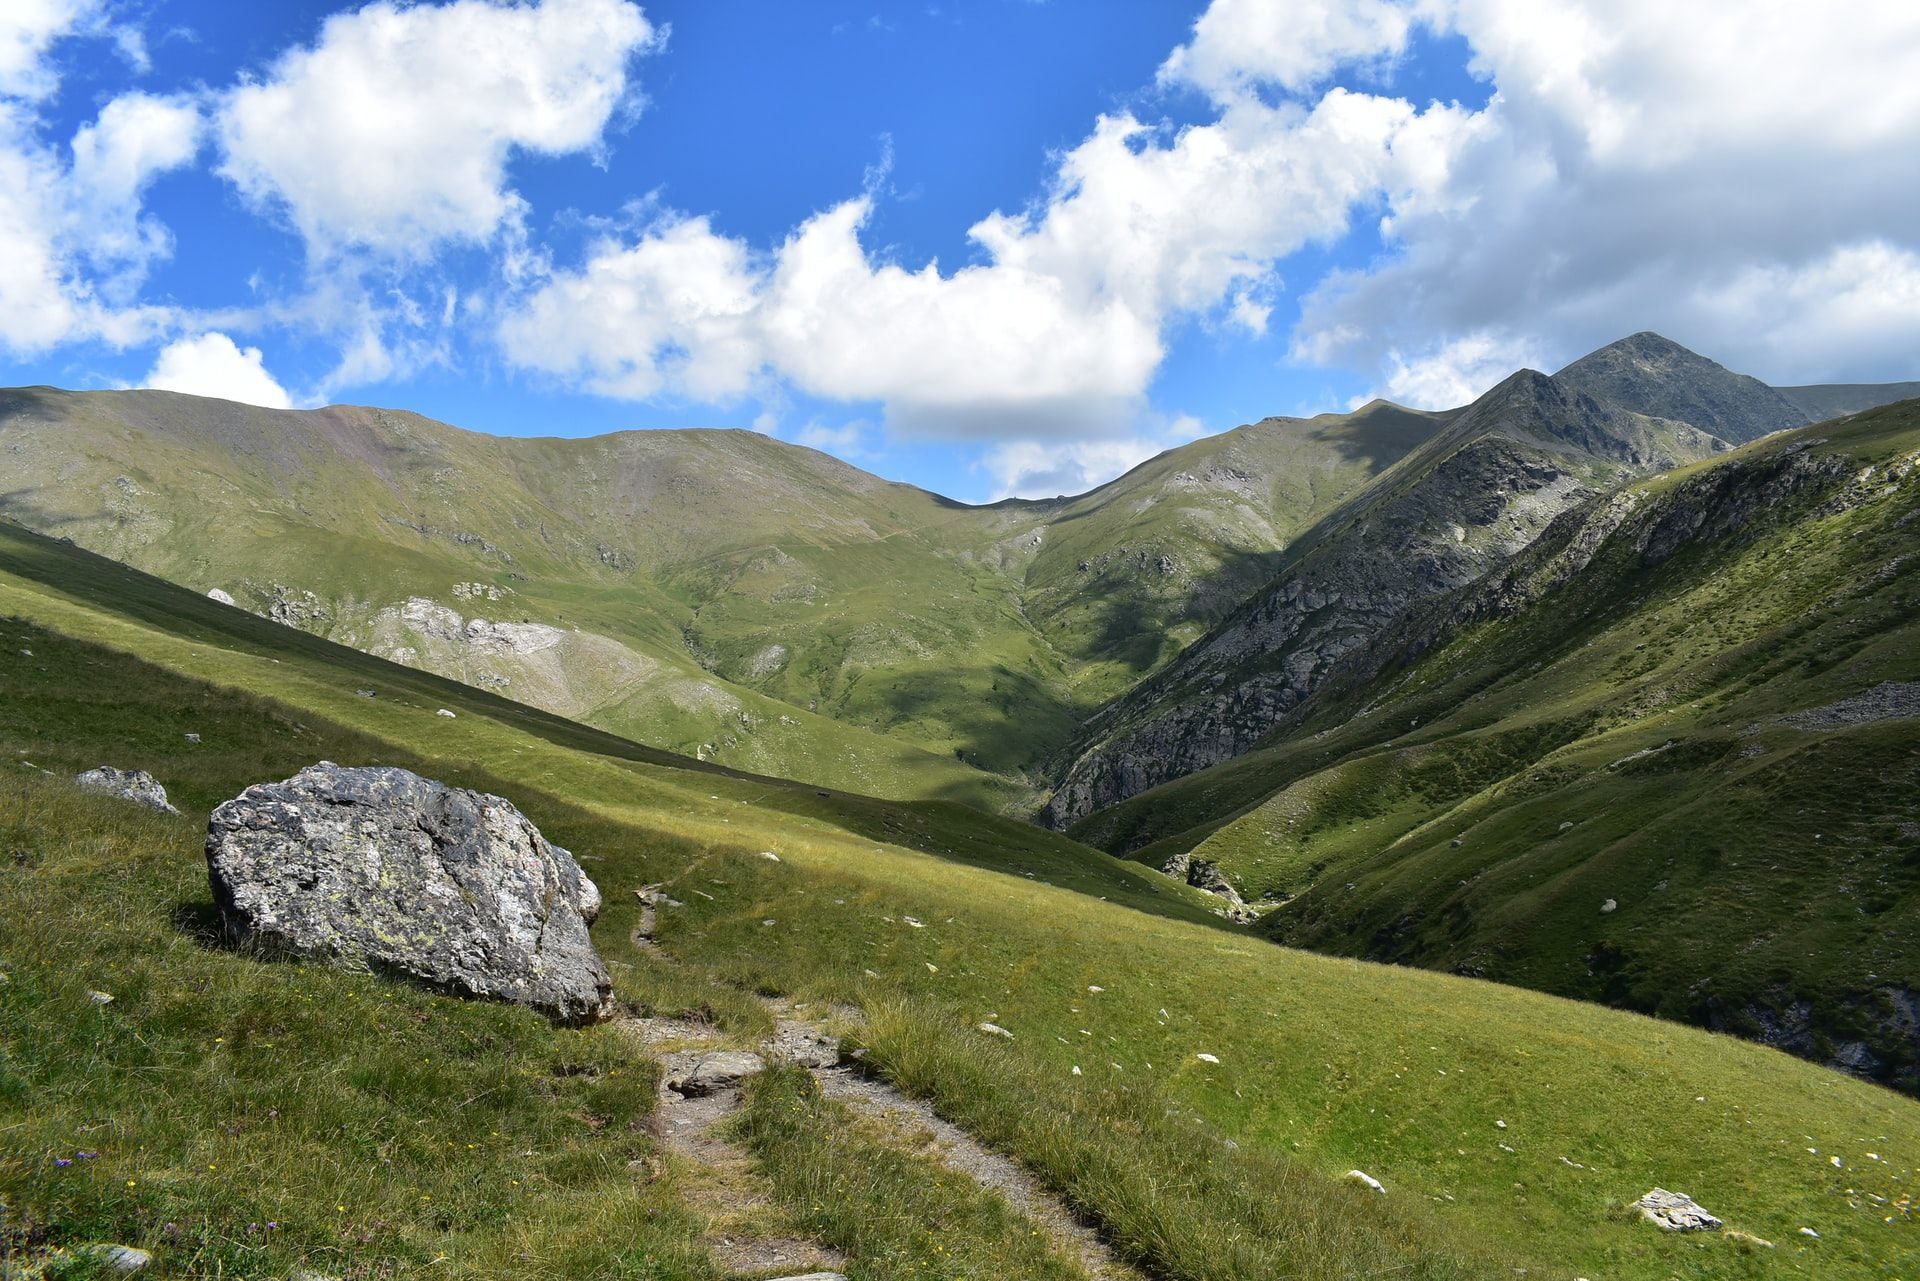 Summer hiking in the Pyrenees (part 2)